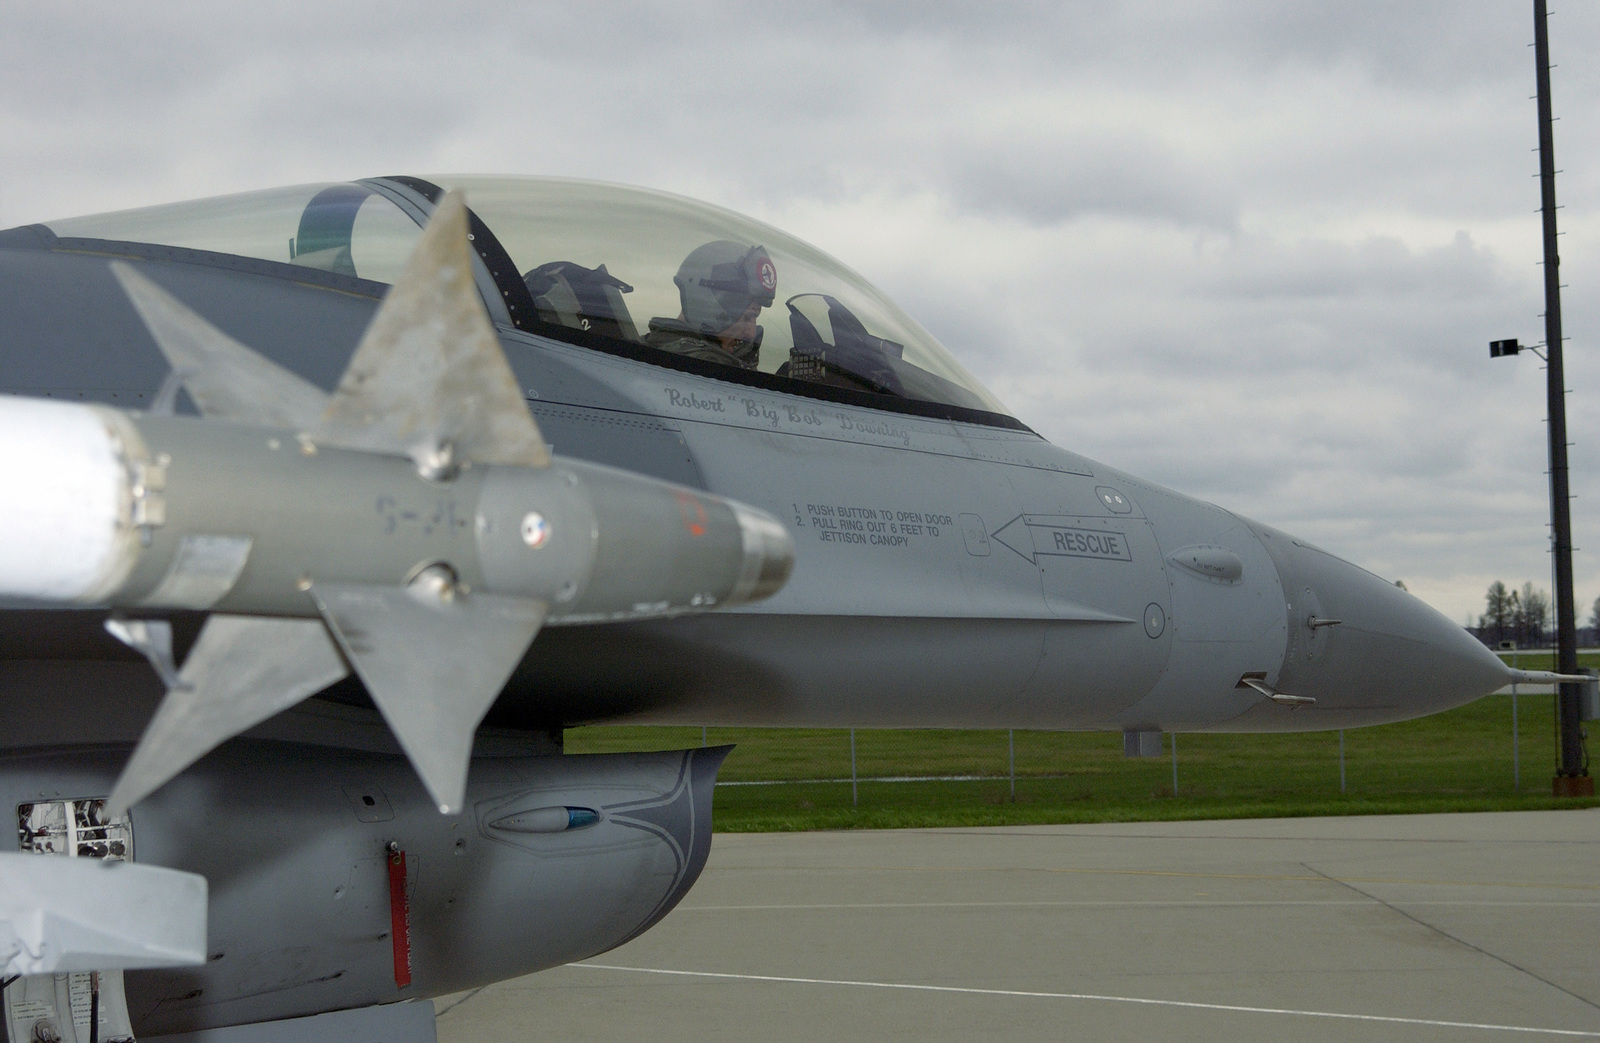 An Indiana Air National Guard F-16 Fighting Falcon aircraft taxies out for a mission during a Unit Training Assembly at the 181st Fighter Wing, Terre Haute International Airport, Ind., on Nov. 6, 2004. The aircraft is armed with an AIM-9 Sidewinder heat-seeking air-to-air missile. (USAF photo by SENIOR MASTER SGT. John S. Chapman) (RELEASED)